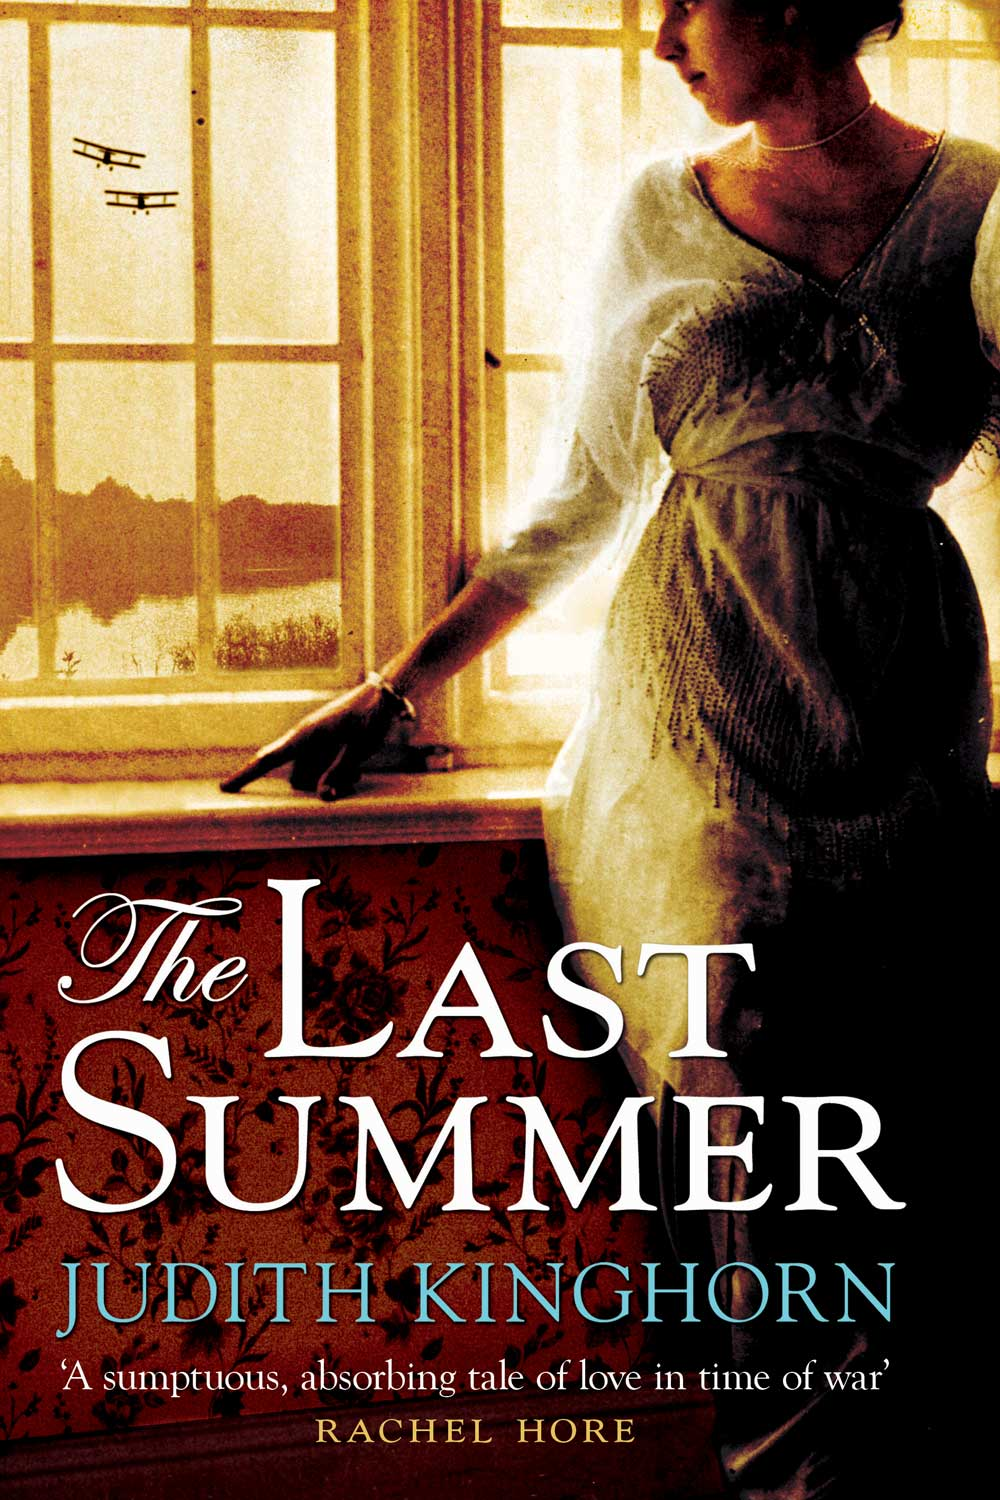 judith_kinghorn_the_last_summer